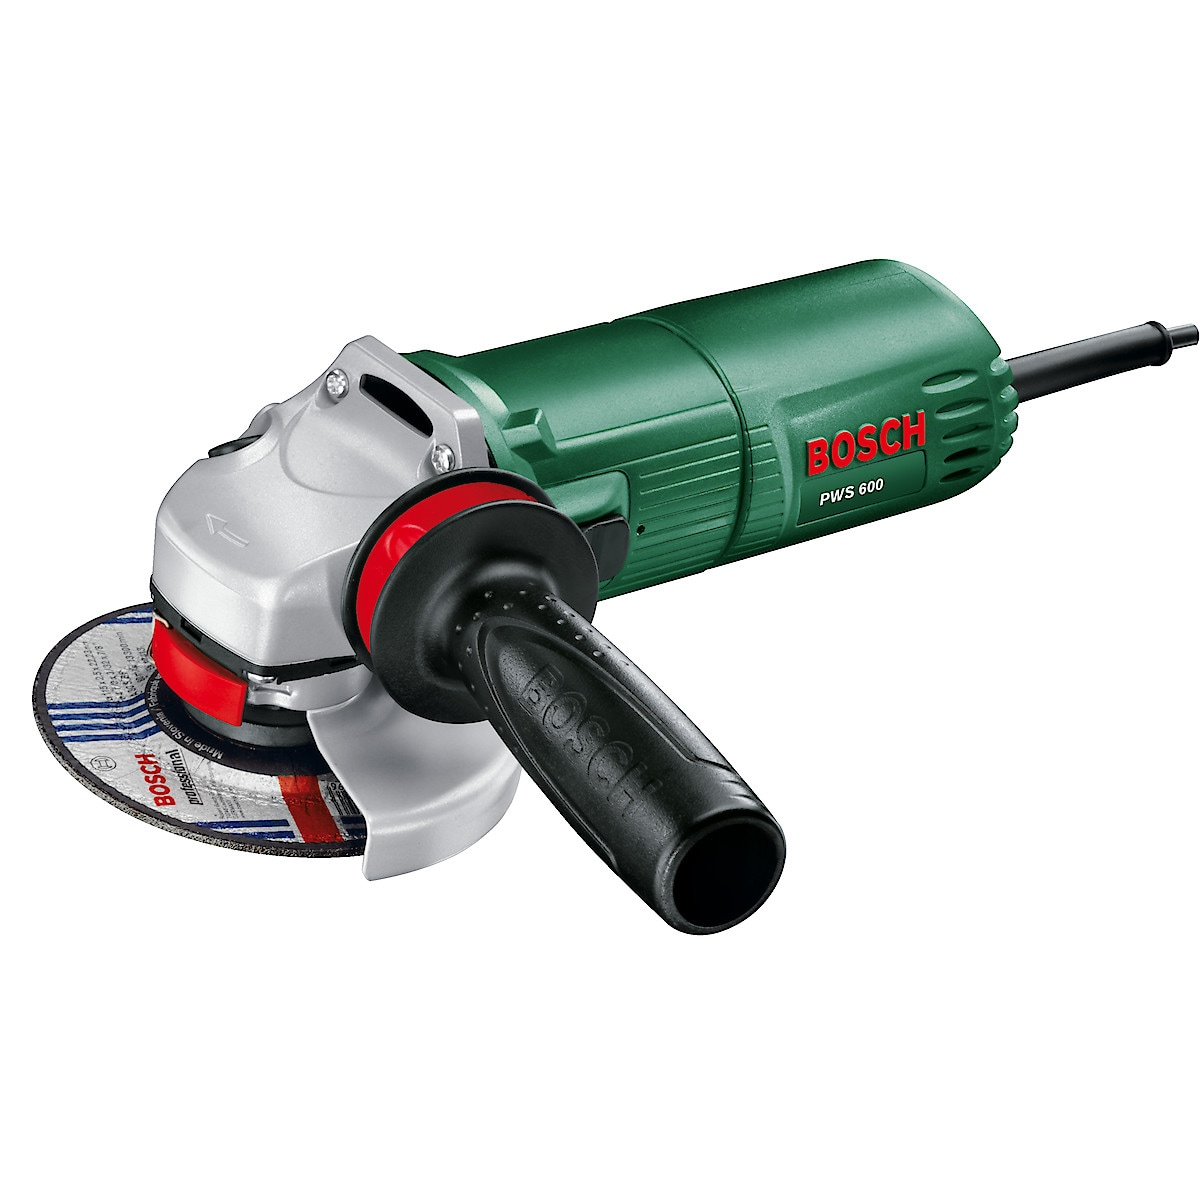 Bosch PWS 600 Angle Grinder